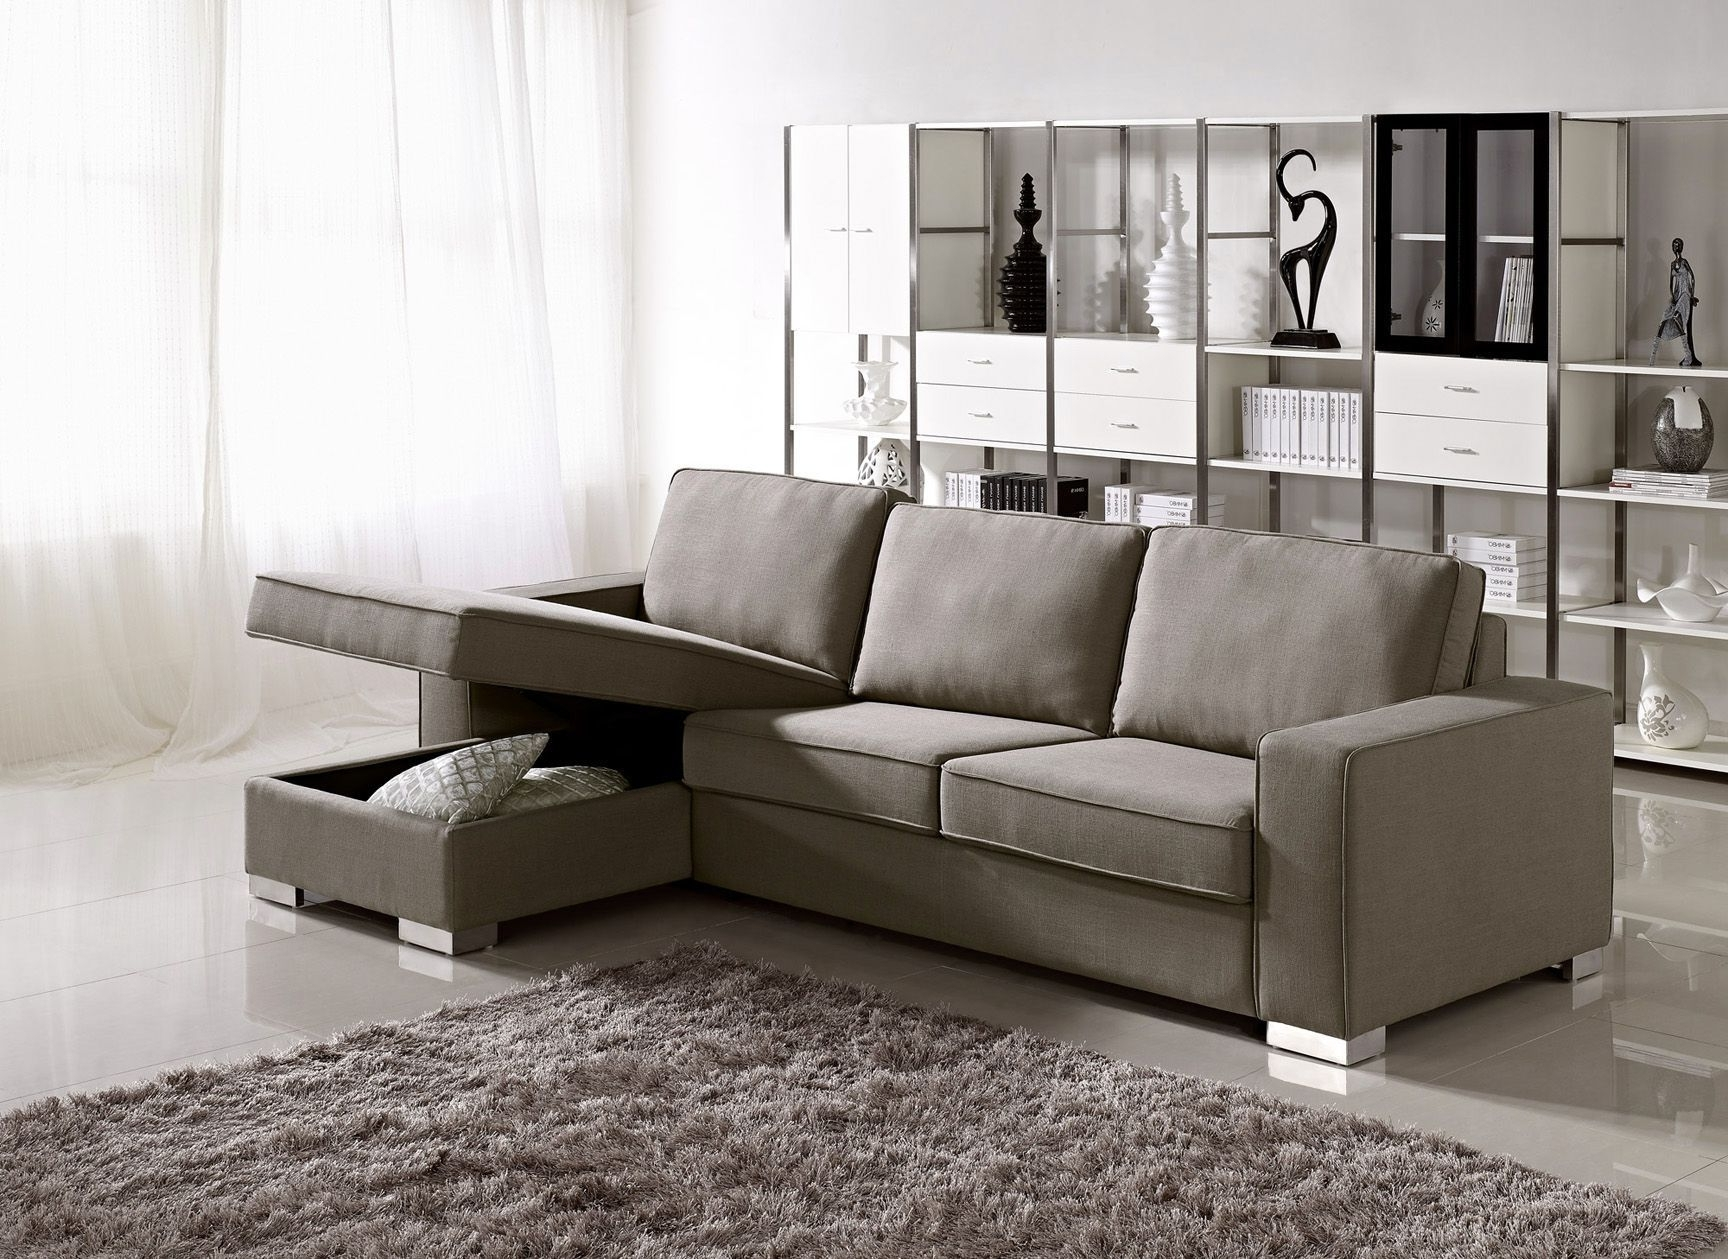 Fashionable Apartment Sectional Sofa With Chaise – Hotelsbacau Throughout Portland Oregon Sectional Sofas (View 20 of 20)